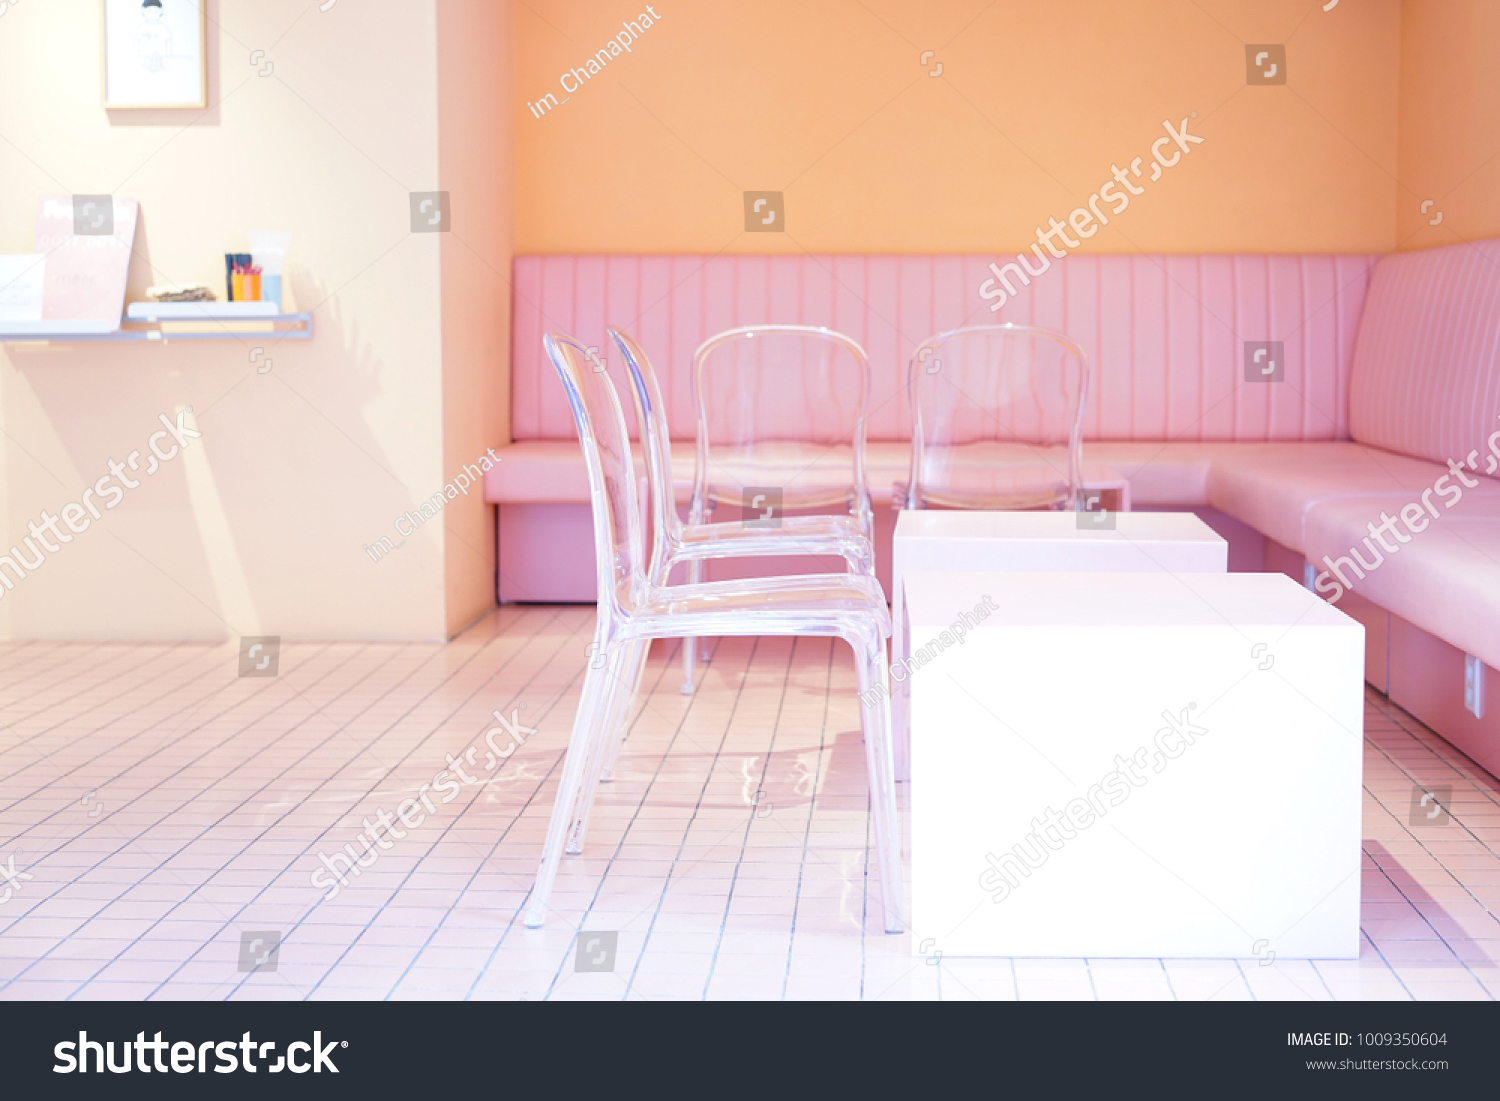 Pink Seats Pink Room Pink Cafe Stock Photo Edit Now 1009350604